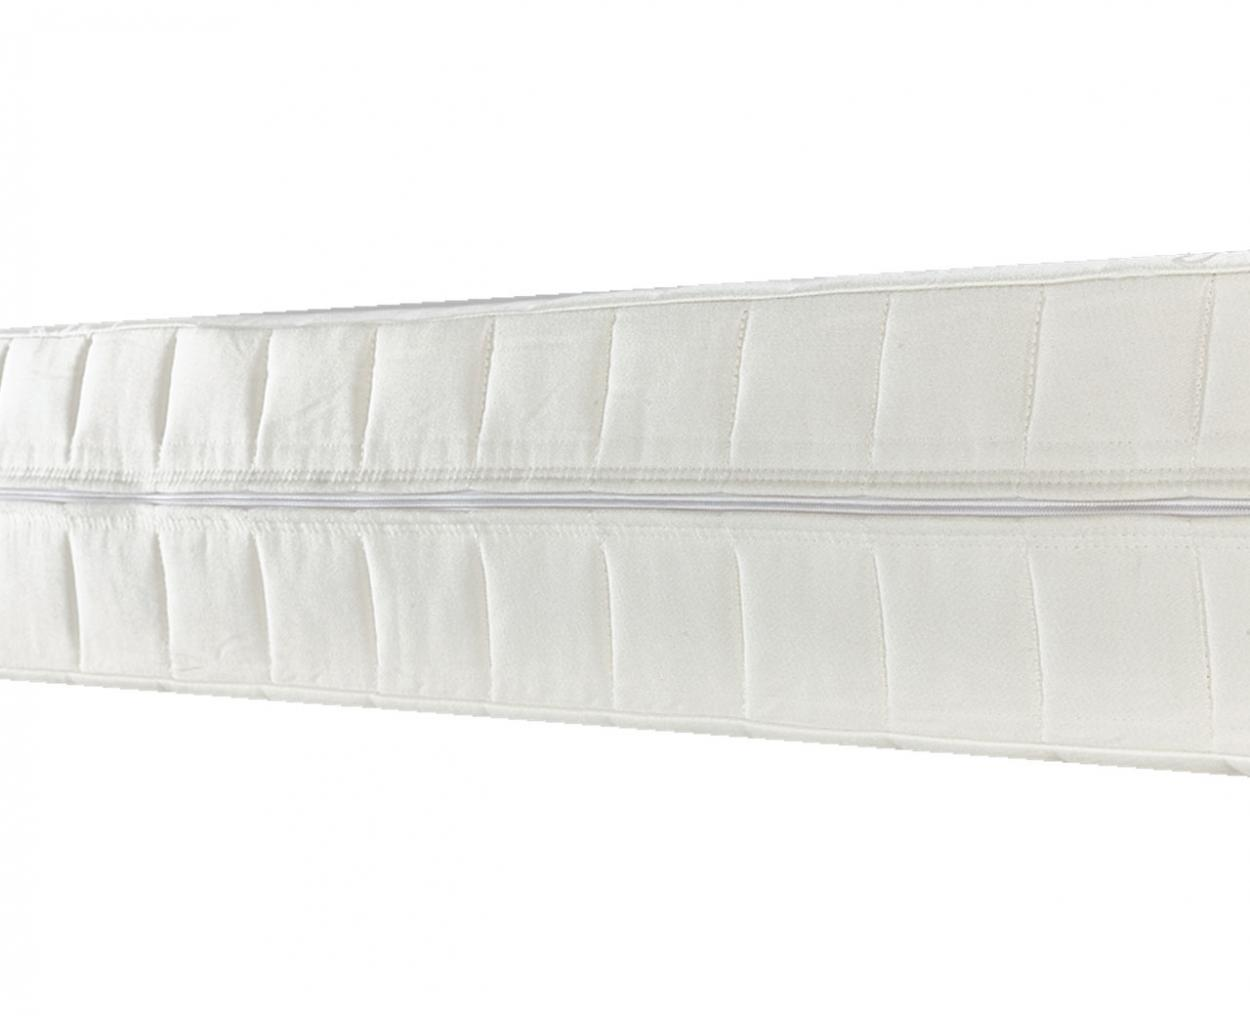 CandiaStrom - Mattress MINOAN CALMNESS - NATUREZZA COLLECTION -  Side View